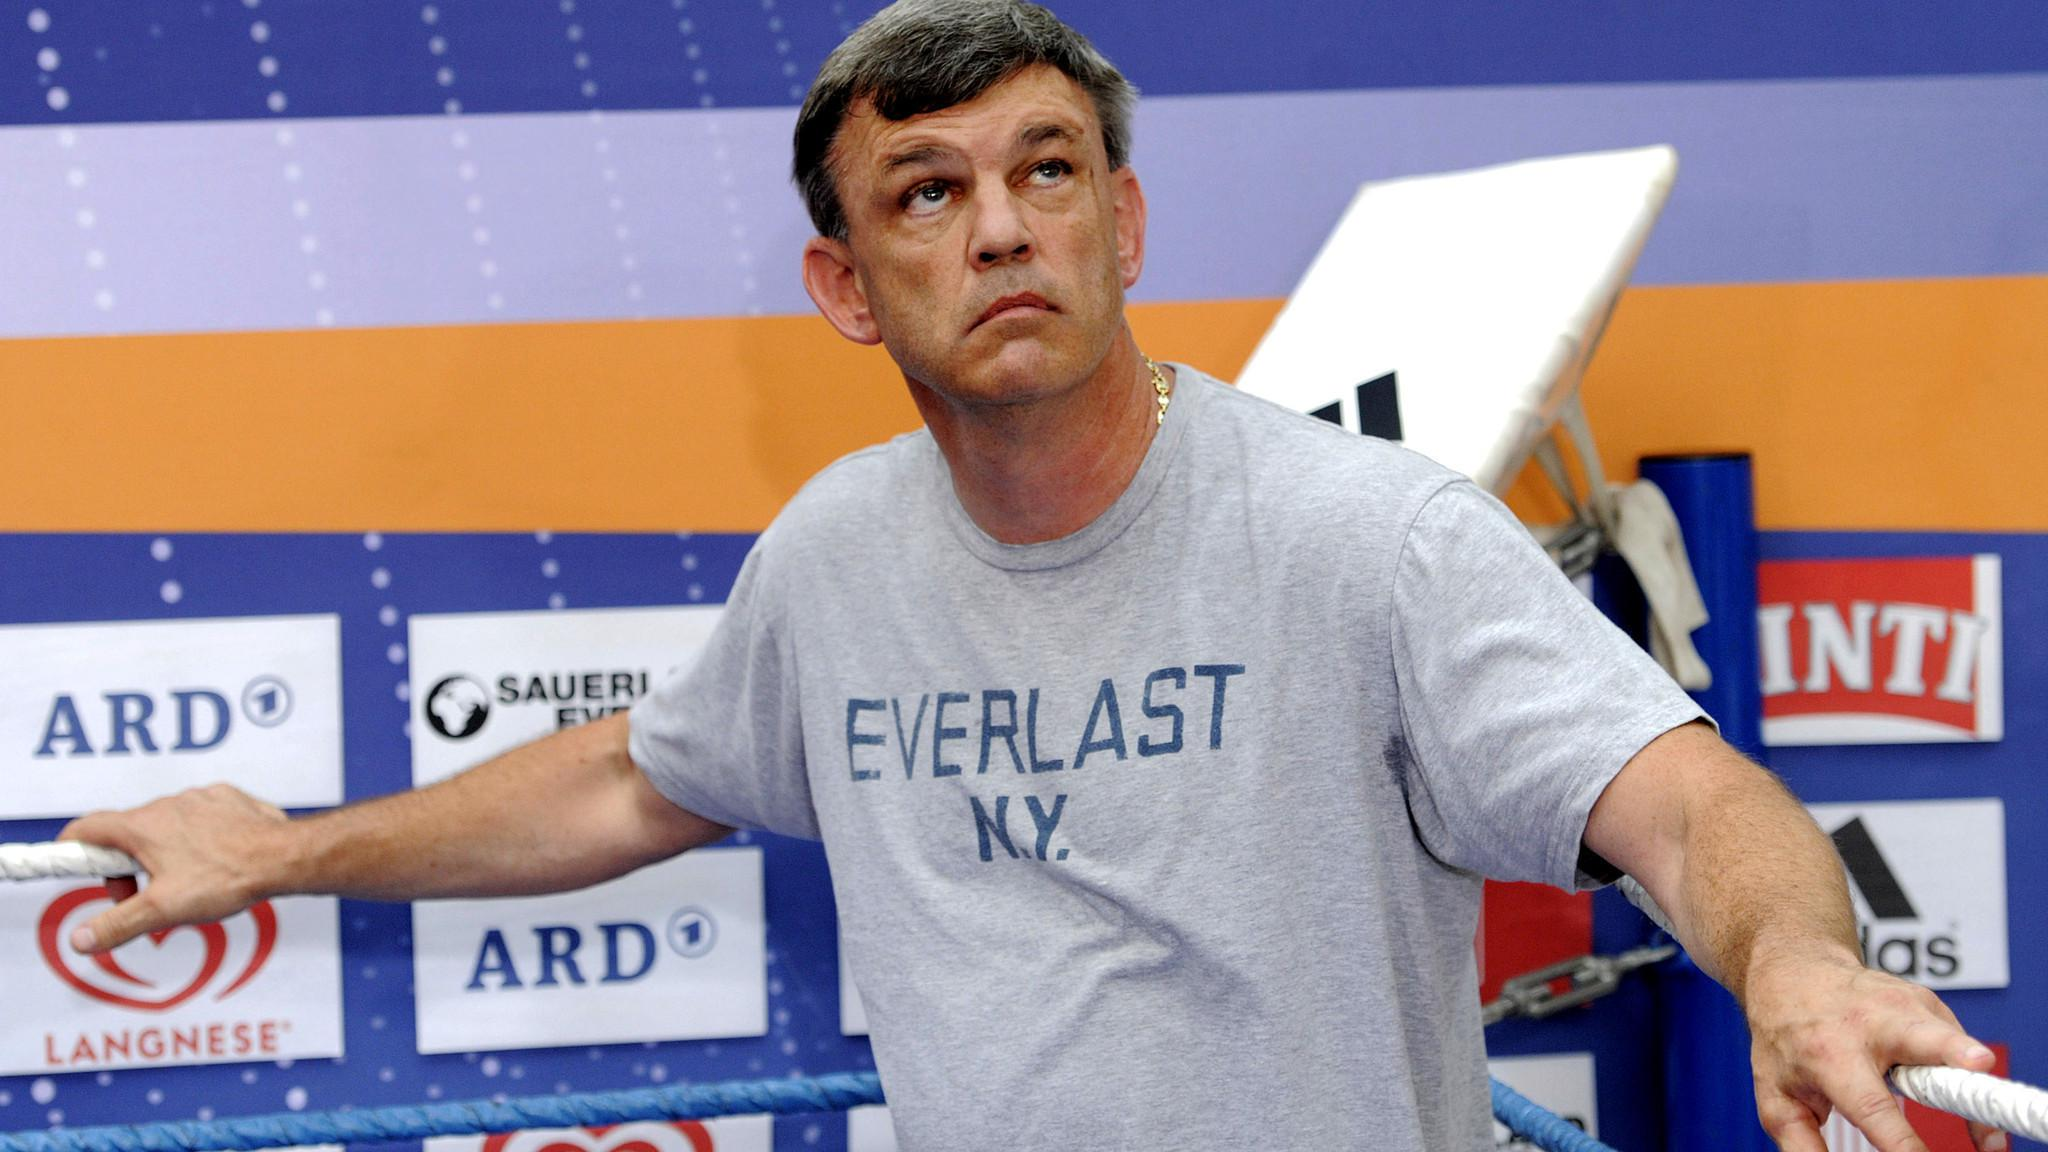 Boxing commentator Teddy Atlas who has been largely replaced by Mark Kriegel on ESPN boxing telecasts will get some airtime on the CBS Sports Network